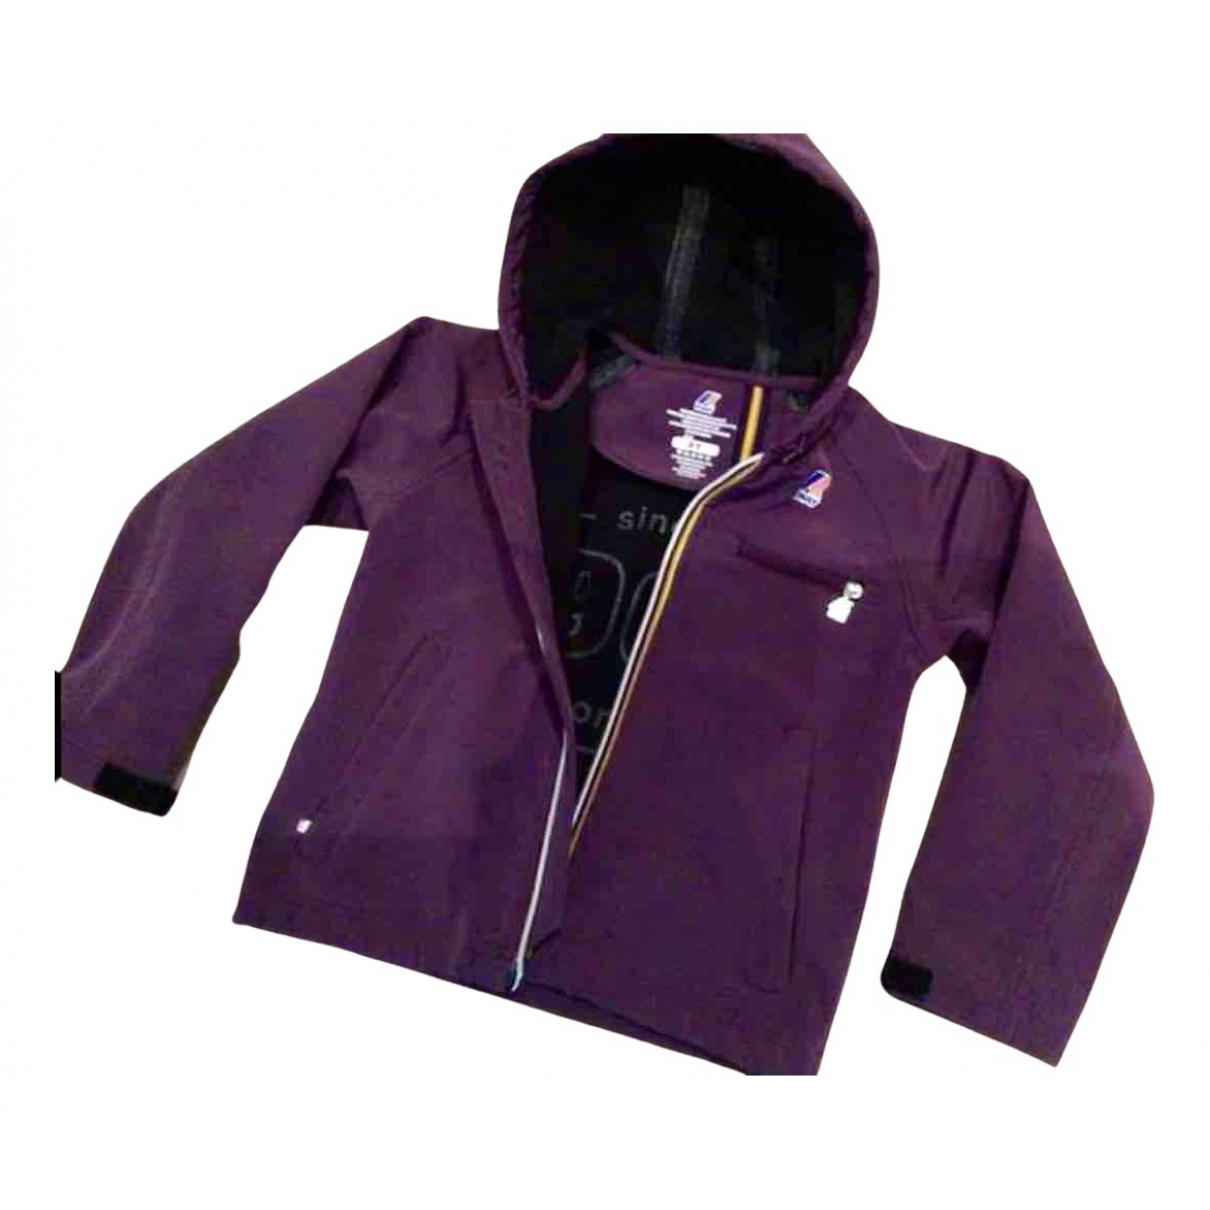 K-way N jacket & coat for Kids 8 years - up to 128cm FR